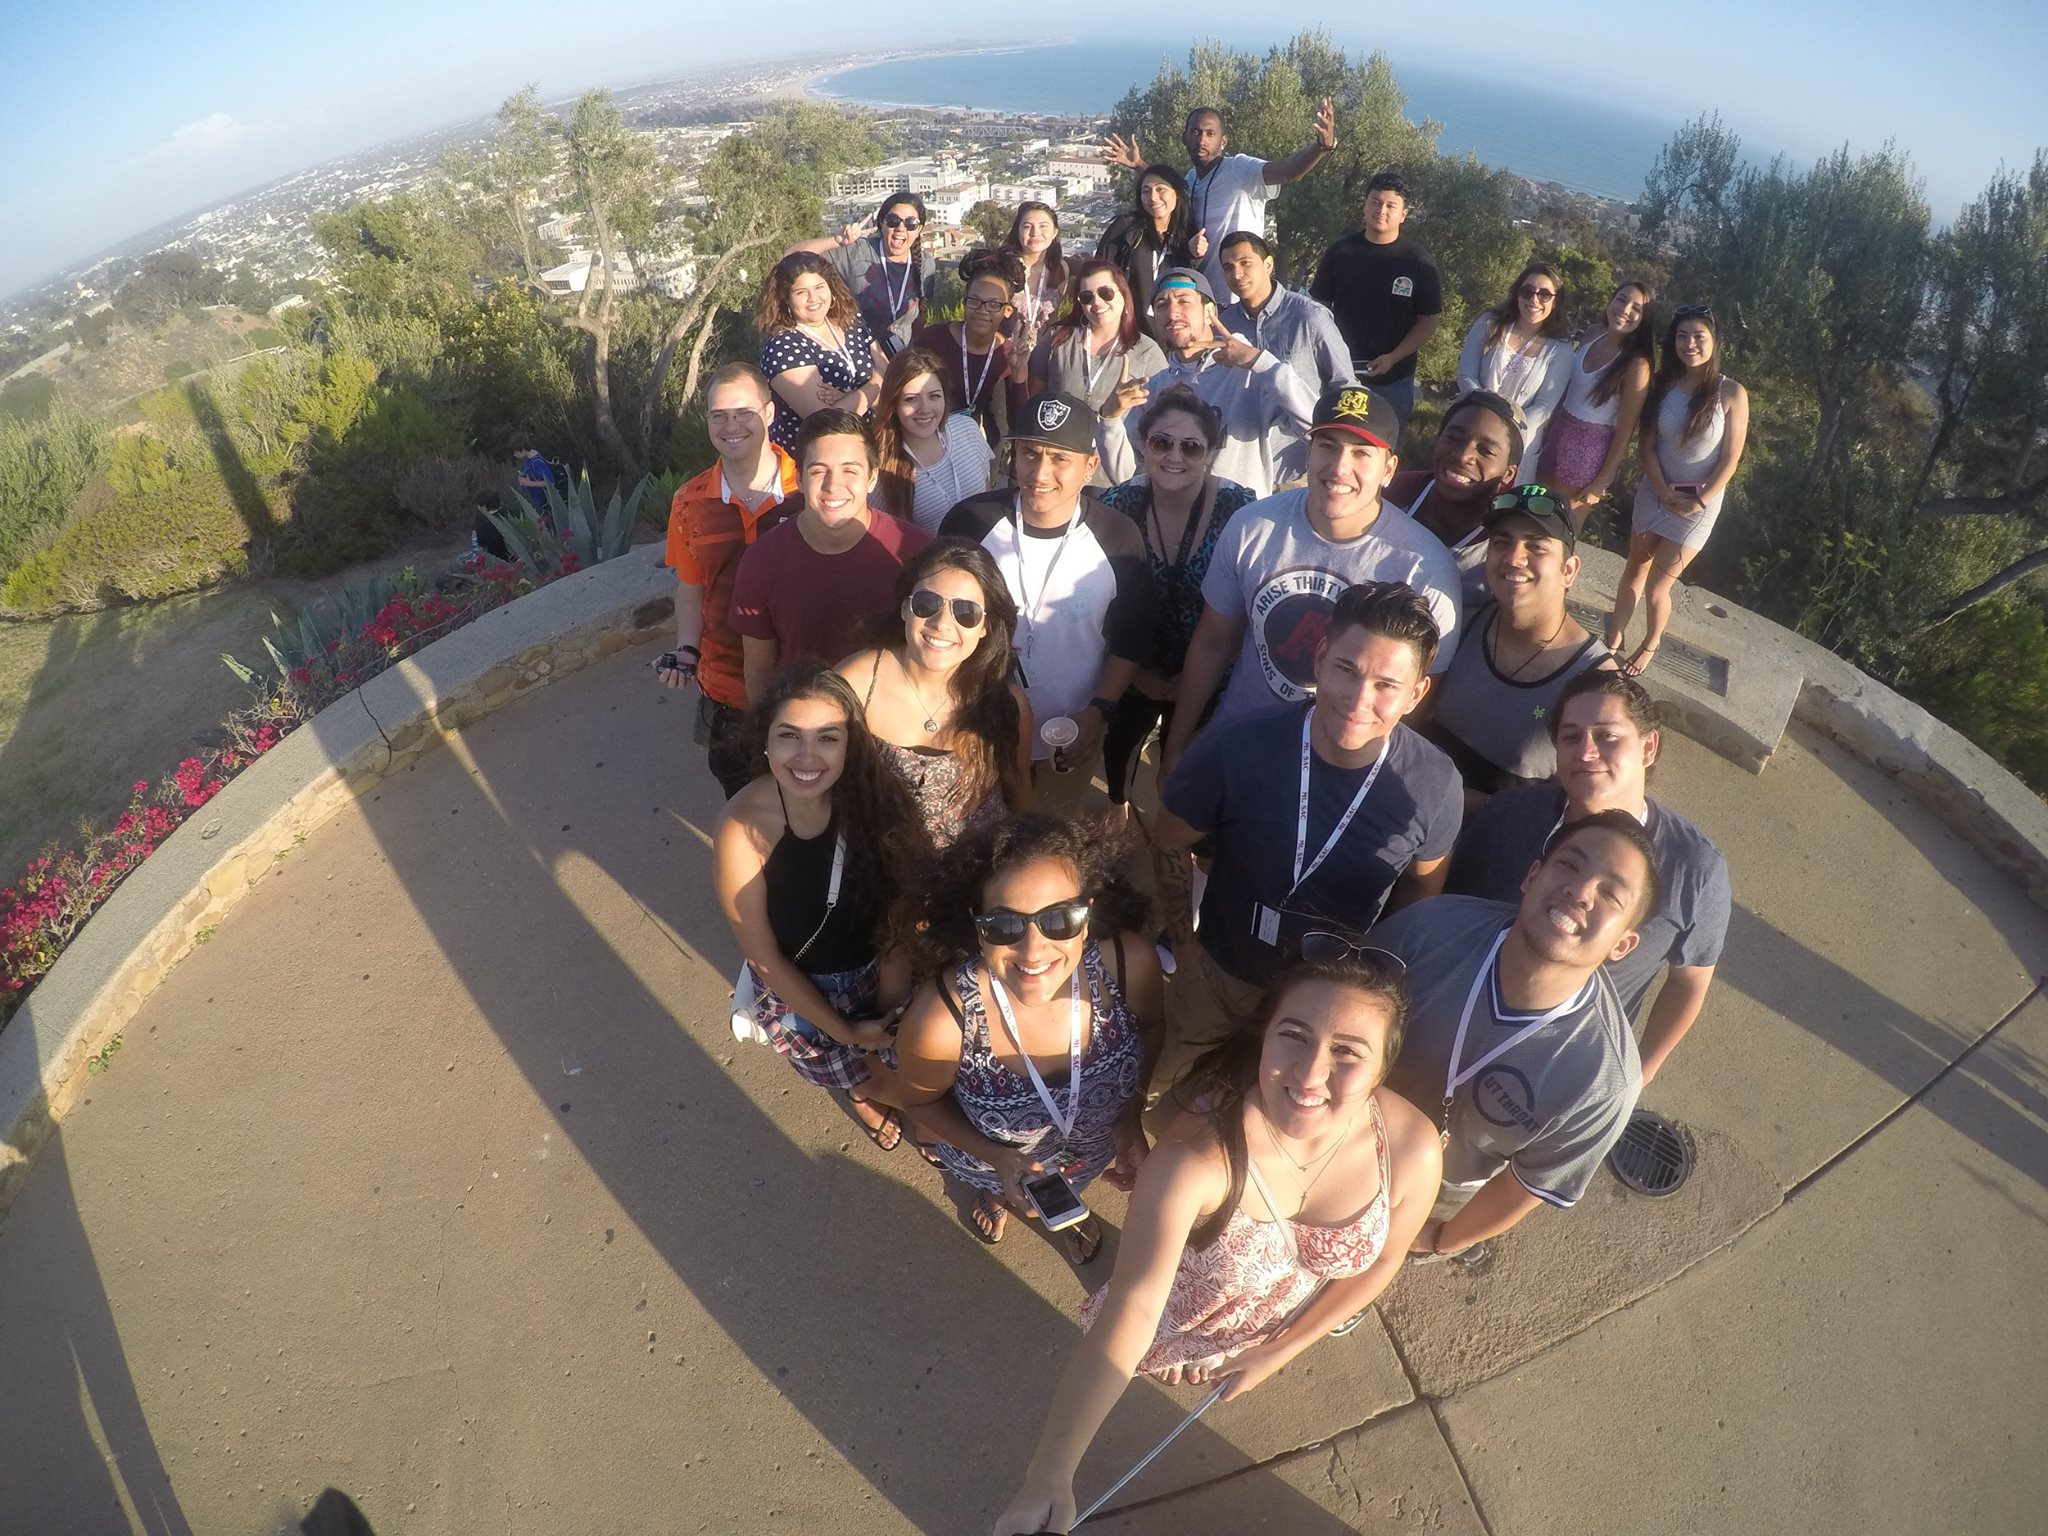 Summer 2015 ACES selfie photo